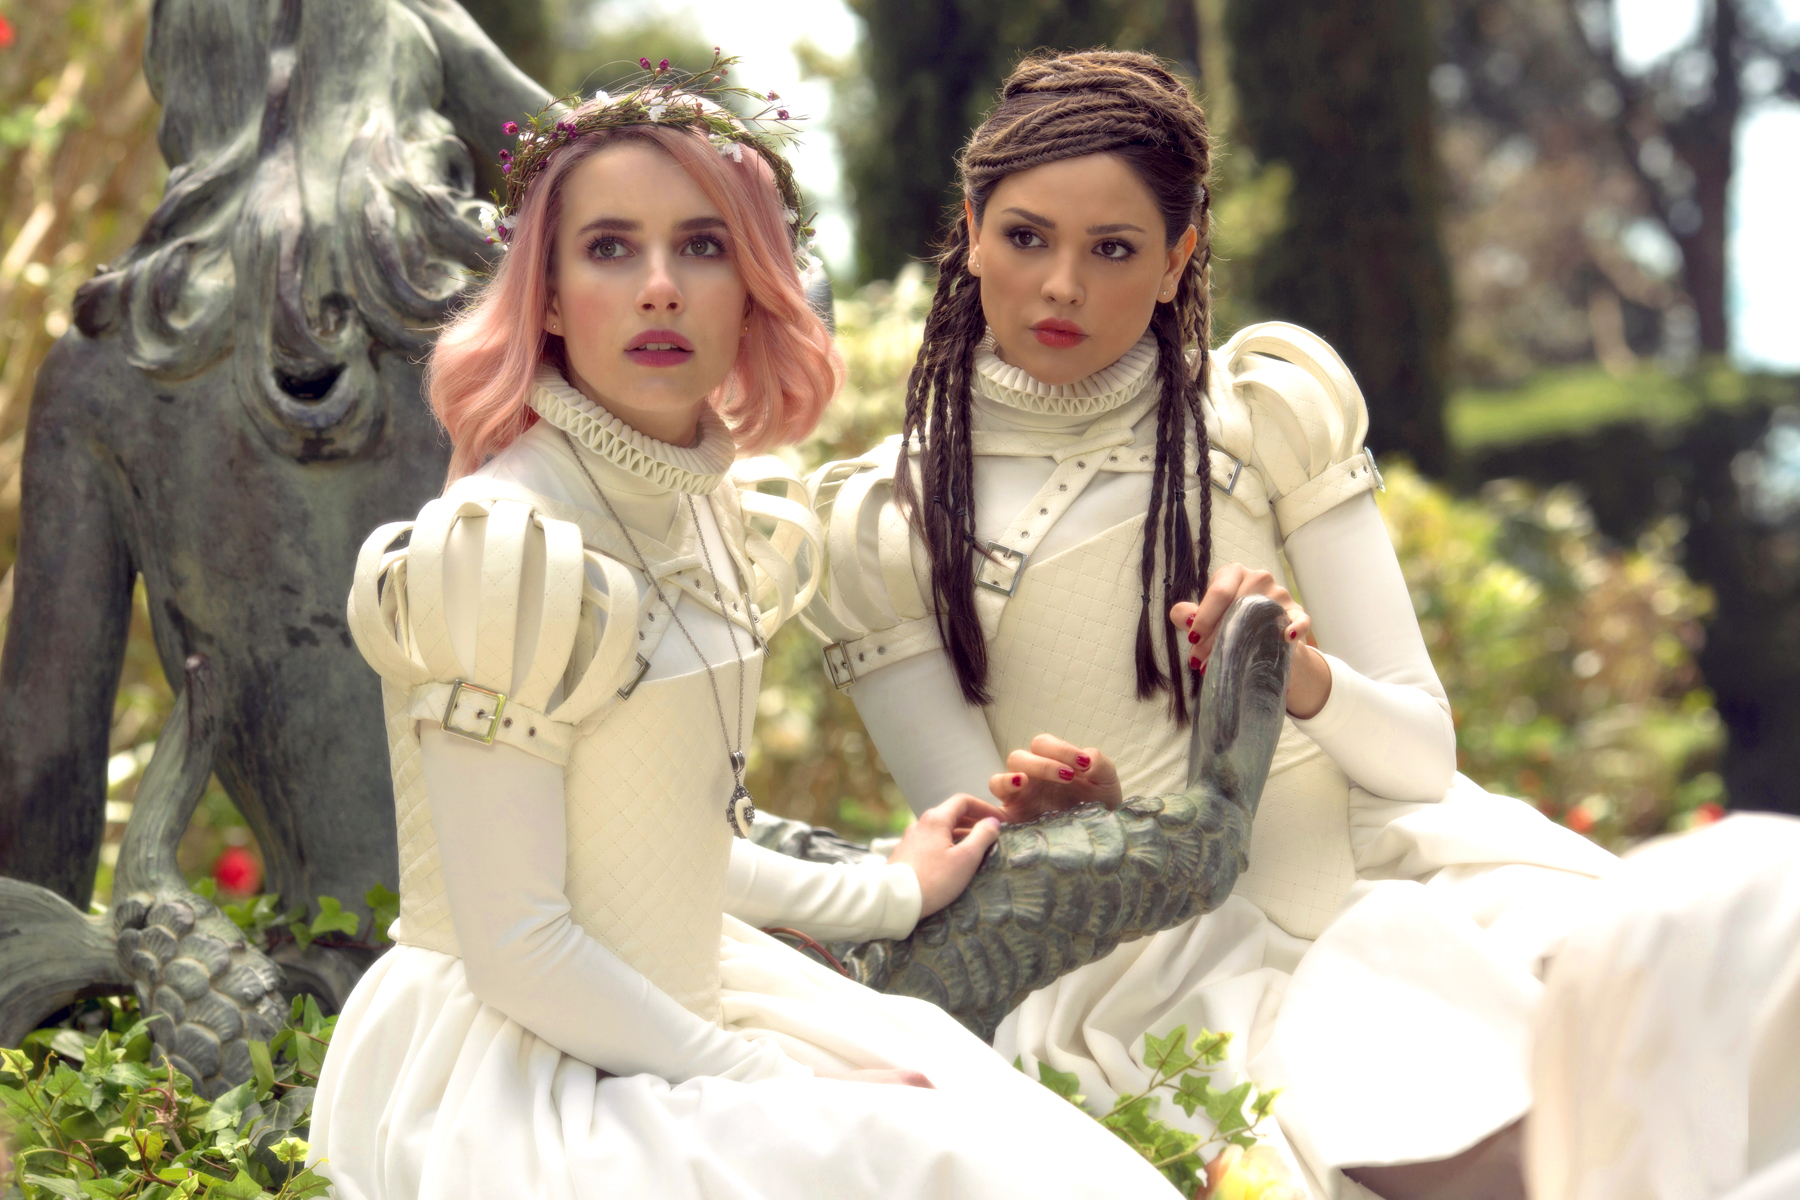 'Paradise Hills' - Directed by Alice Waddington